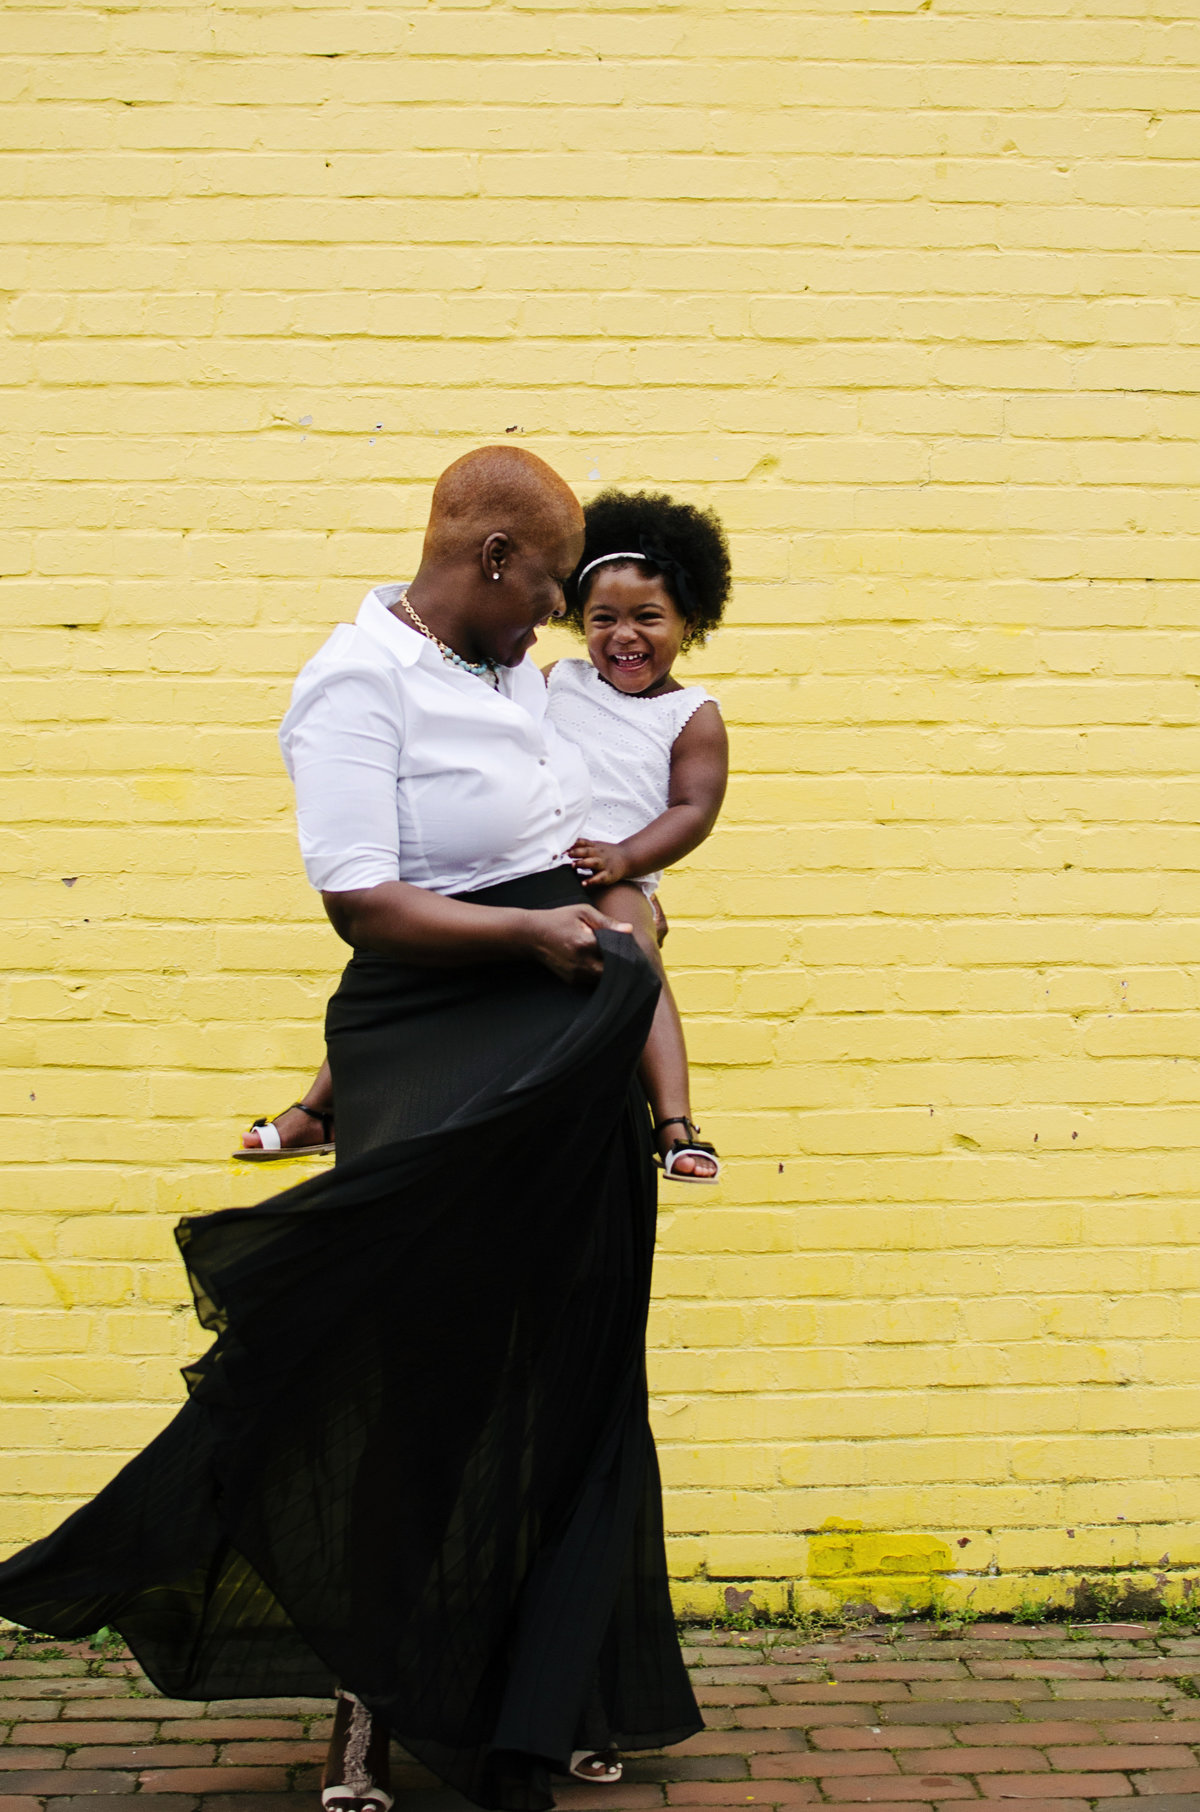 Portrait of a mother and daughter playing against a yellow brick wall in Old Town Alexandria taken by Sarah Alice Photography